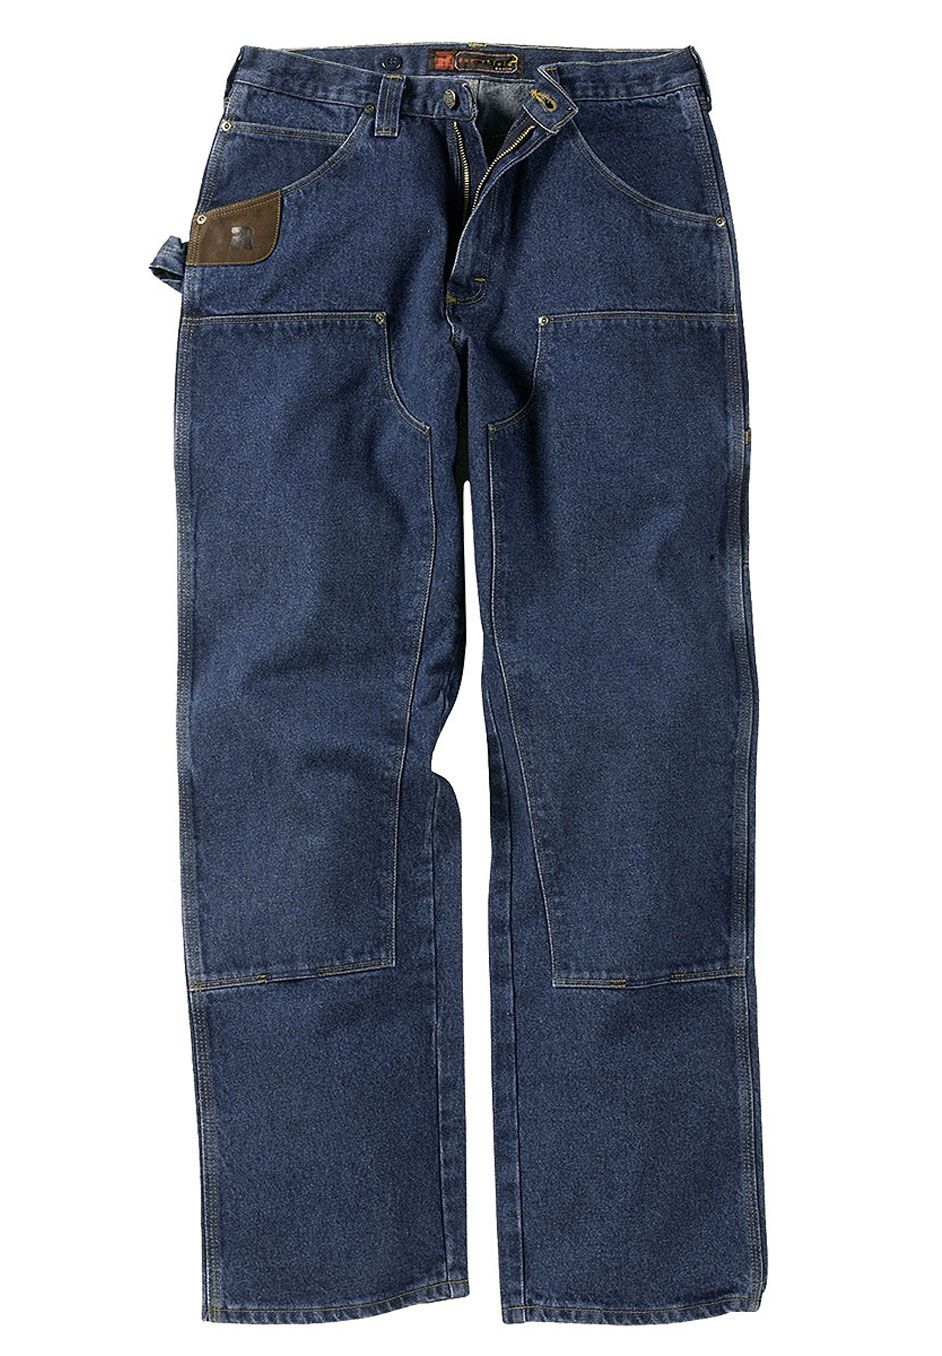 Classic Fit Utility Jeans by Wrangler®,